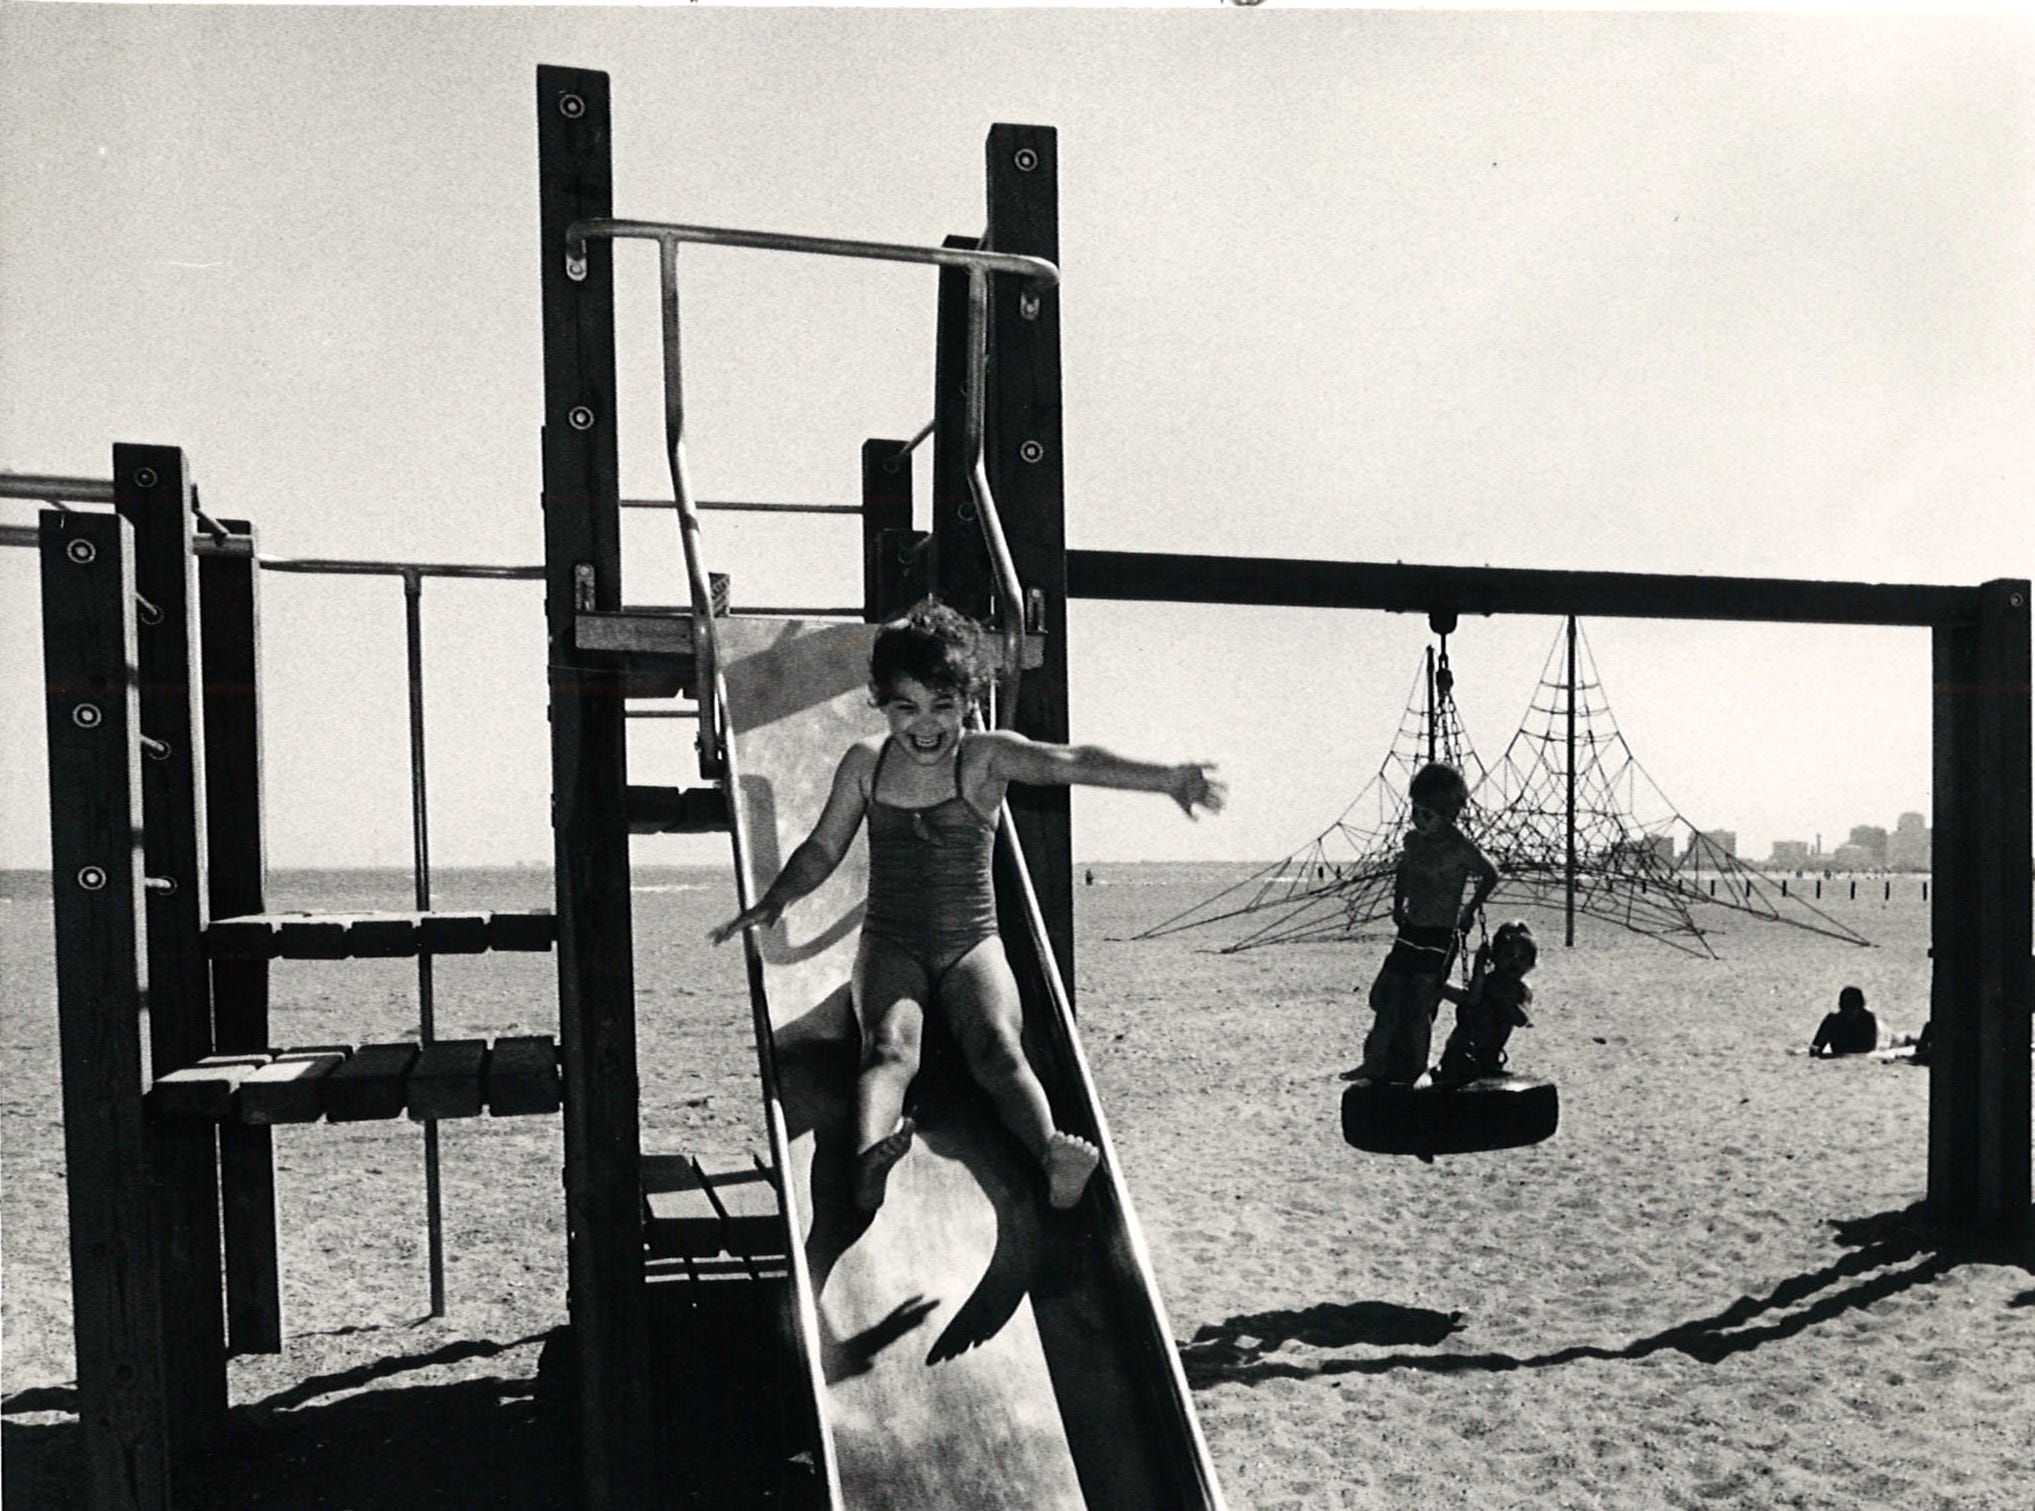 Sarah Briscoe, 4, slides down the playground equipment at Corpus Christi's North Beach as John Magill, 4, and Jana Magill, 2, play on a tire swing on March 17, 1986.